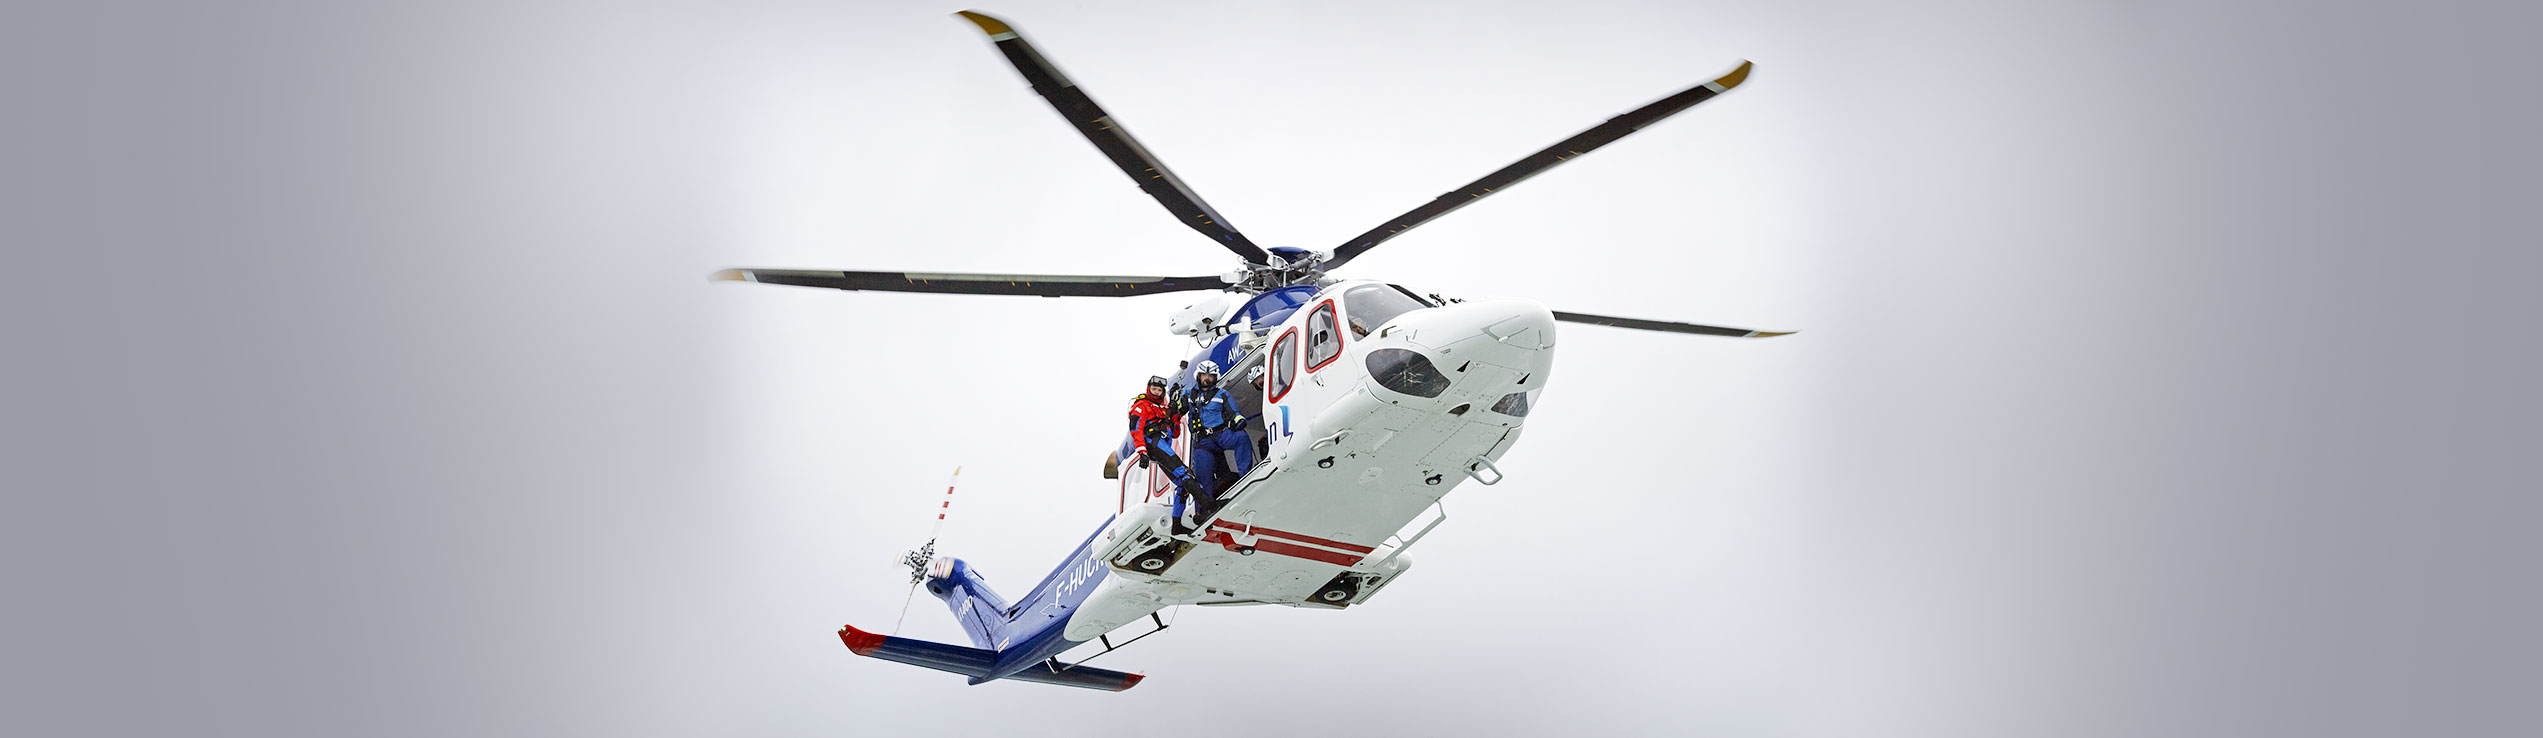 helicopter SAR